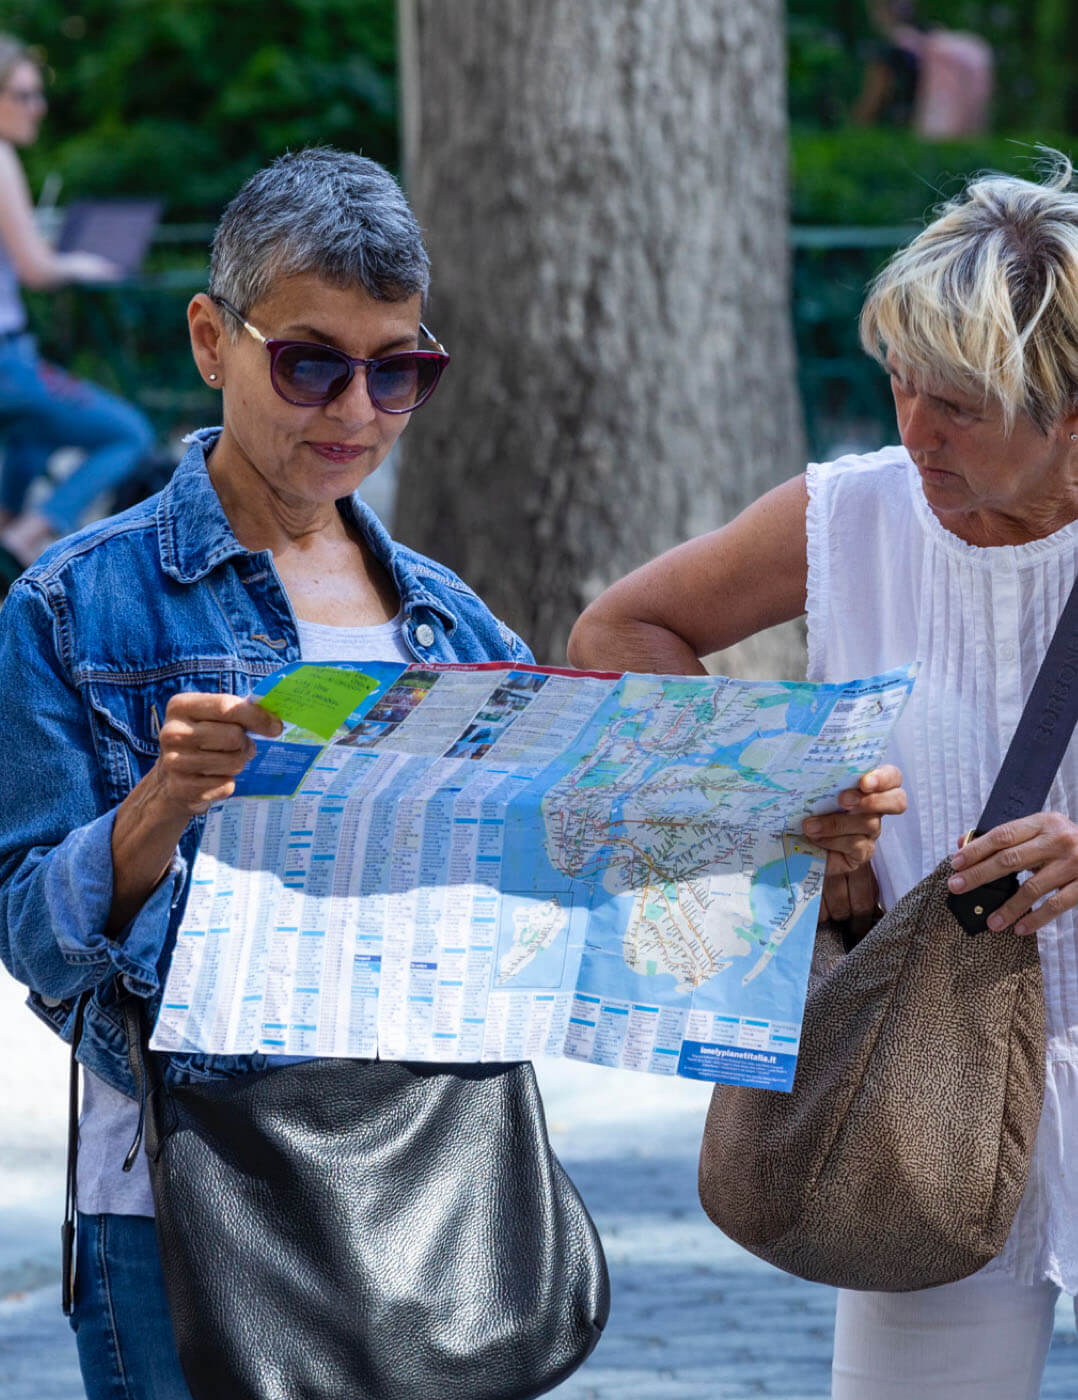 Ladies reading a map outdoors